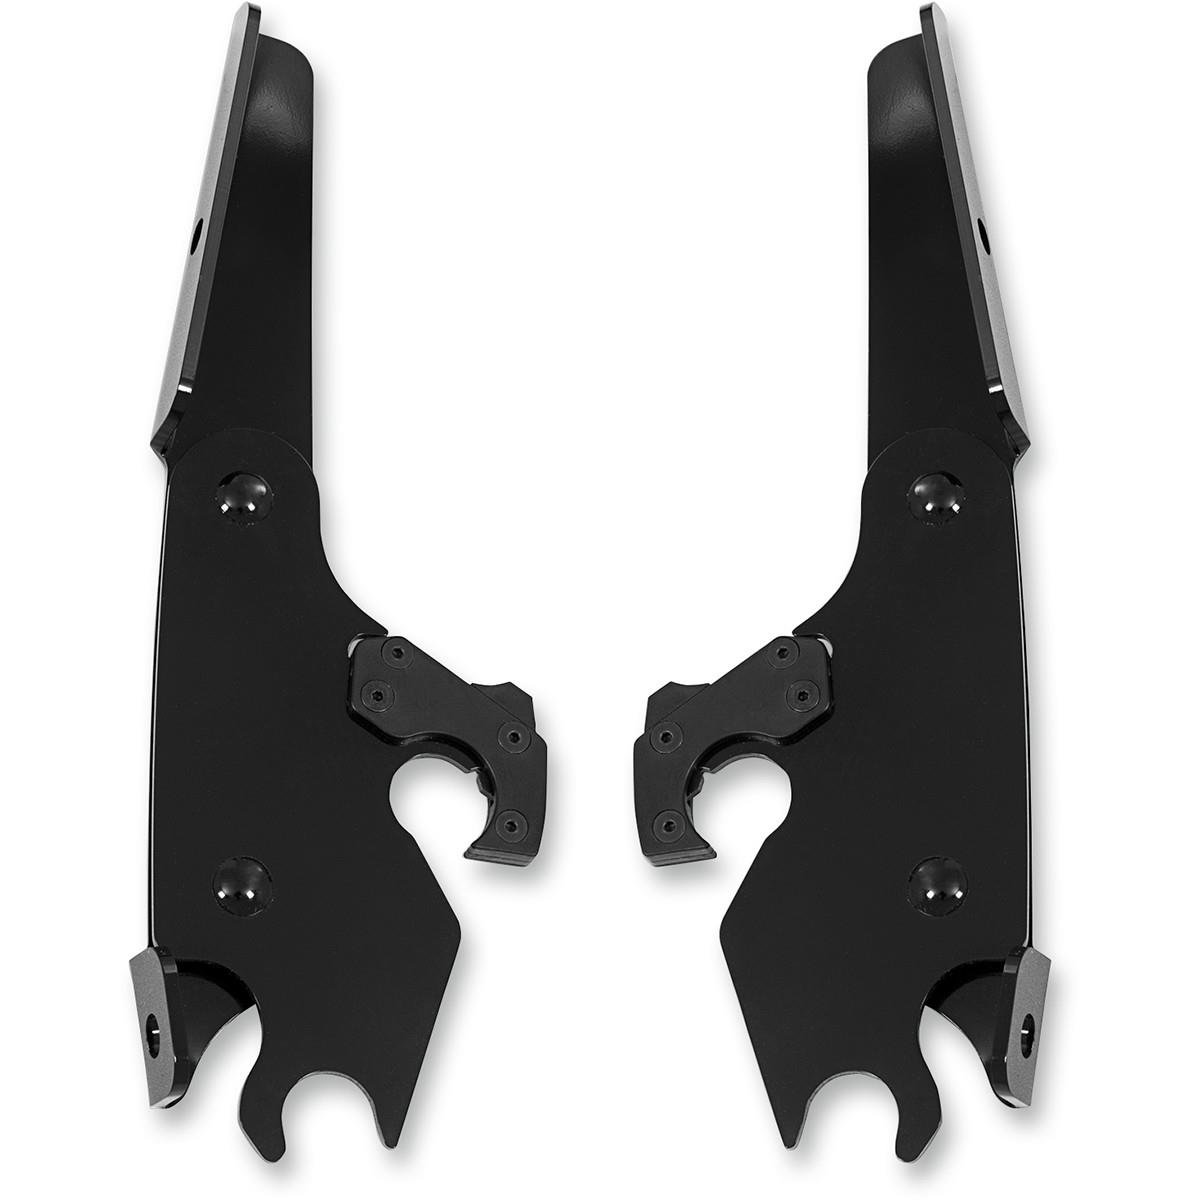 Memphis Shades Batwing Fairing Black Mounting Plates Only MEB1727